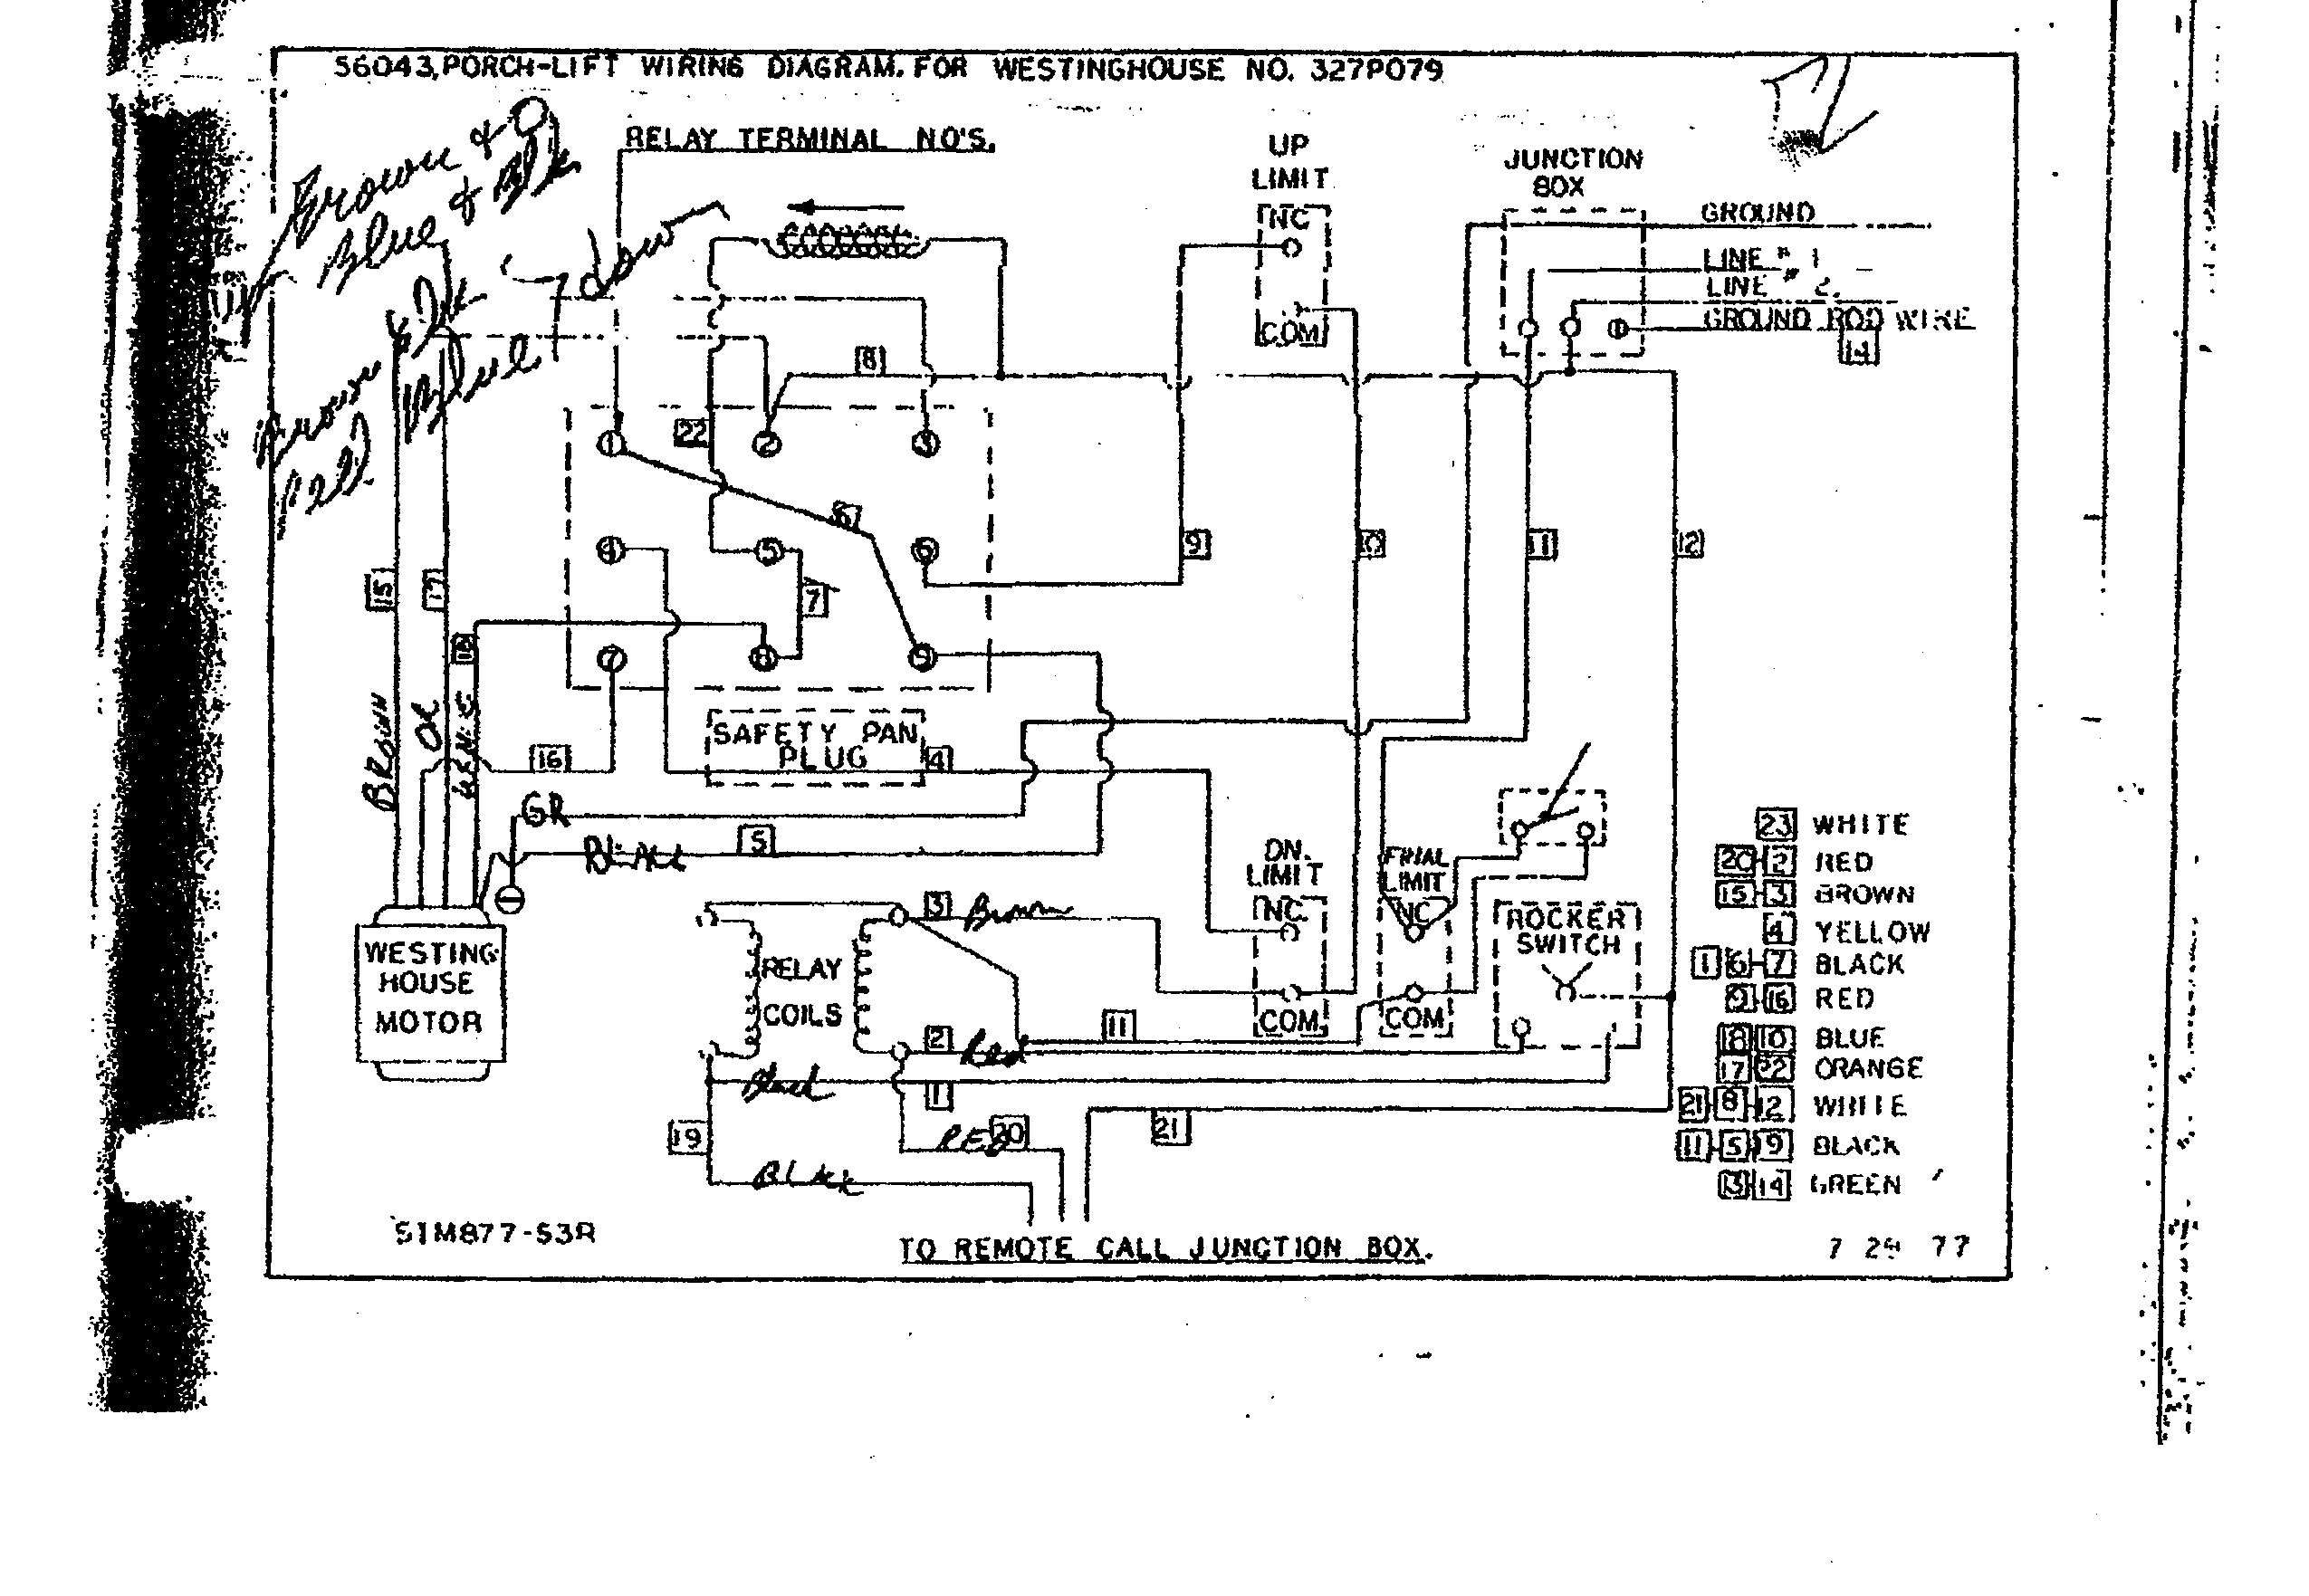 Who / Where can I get help with Westinghouse motor wiring